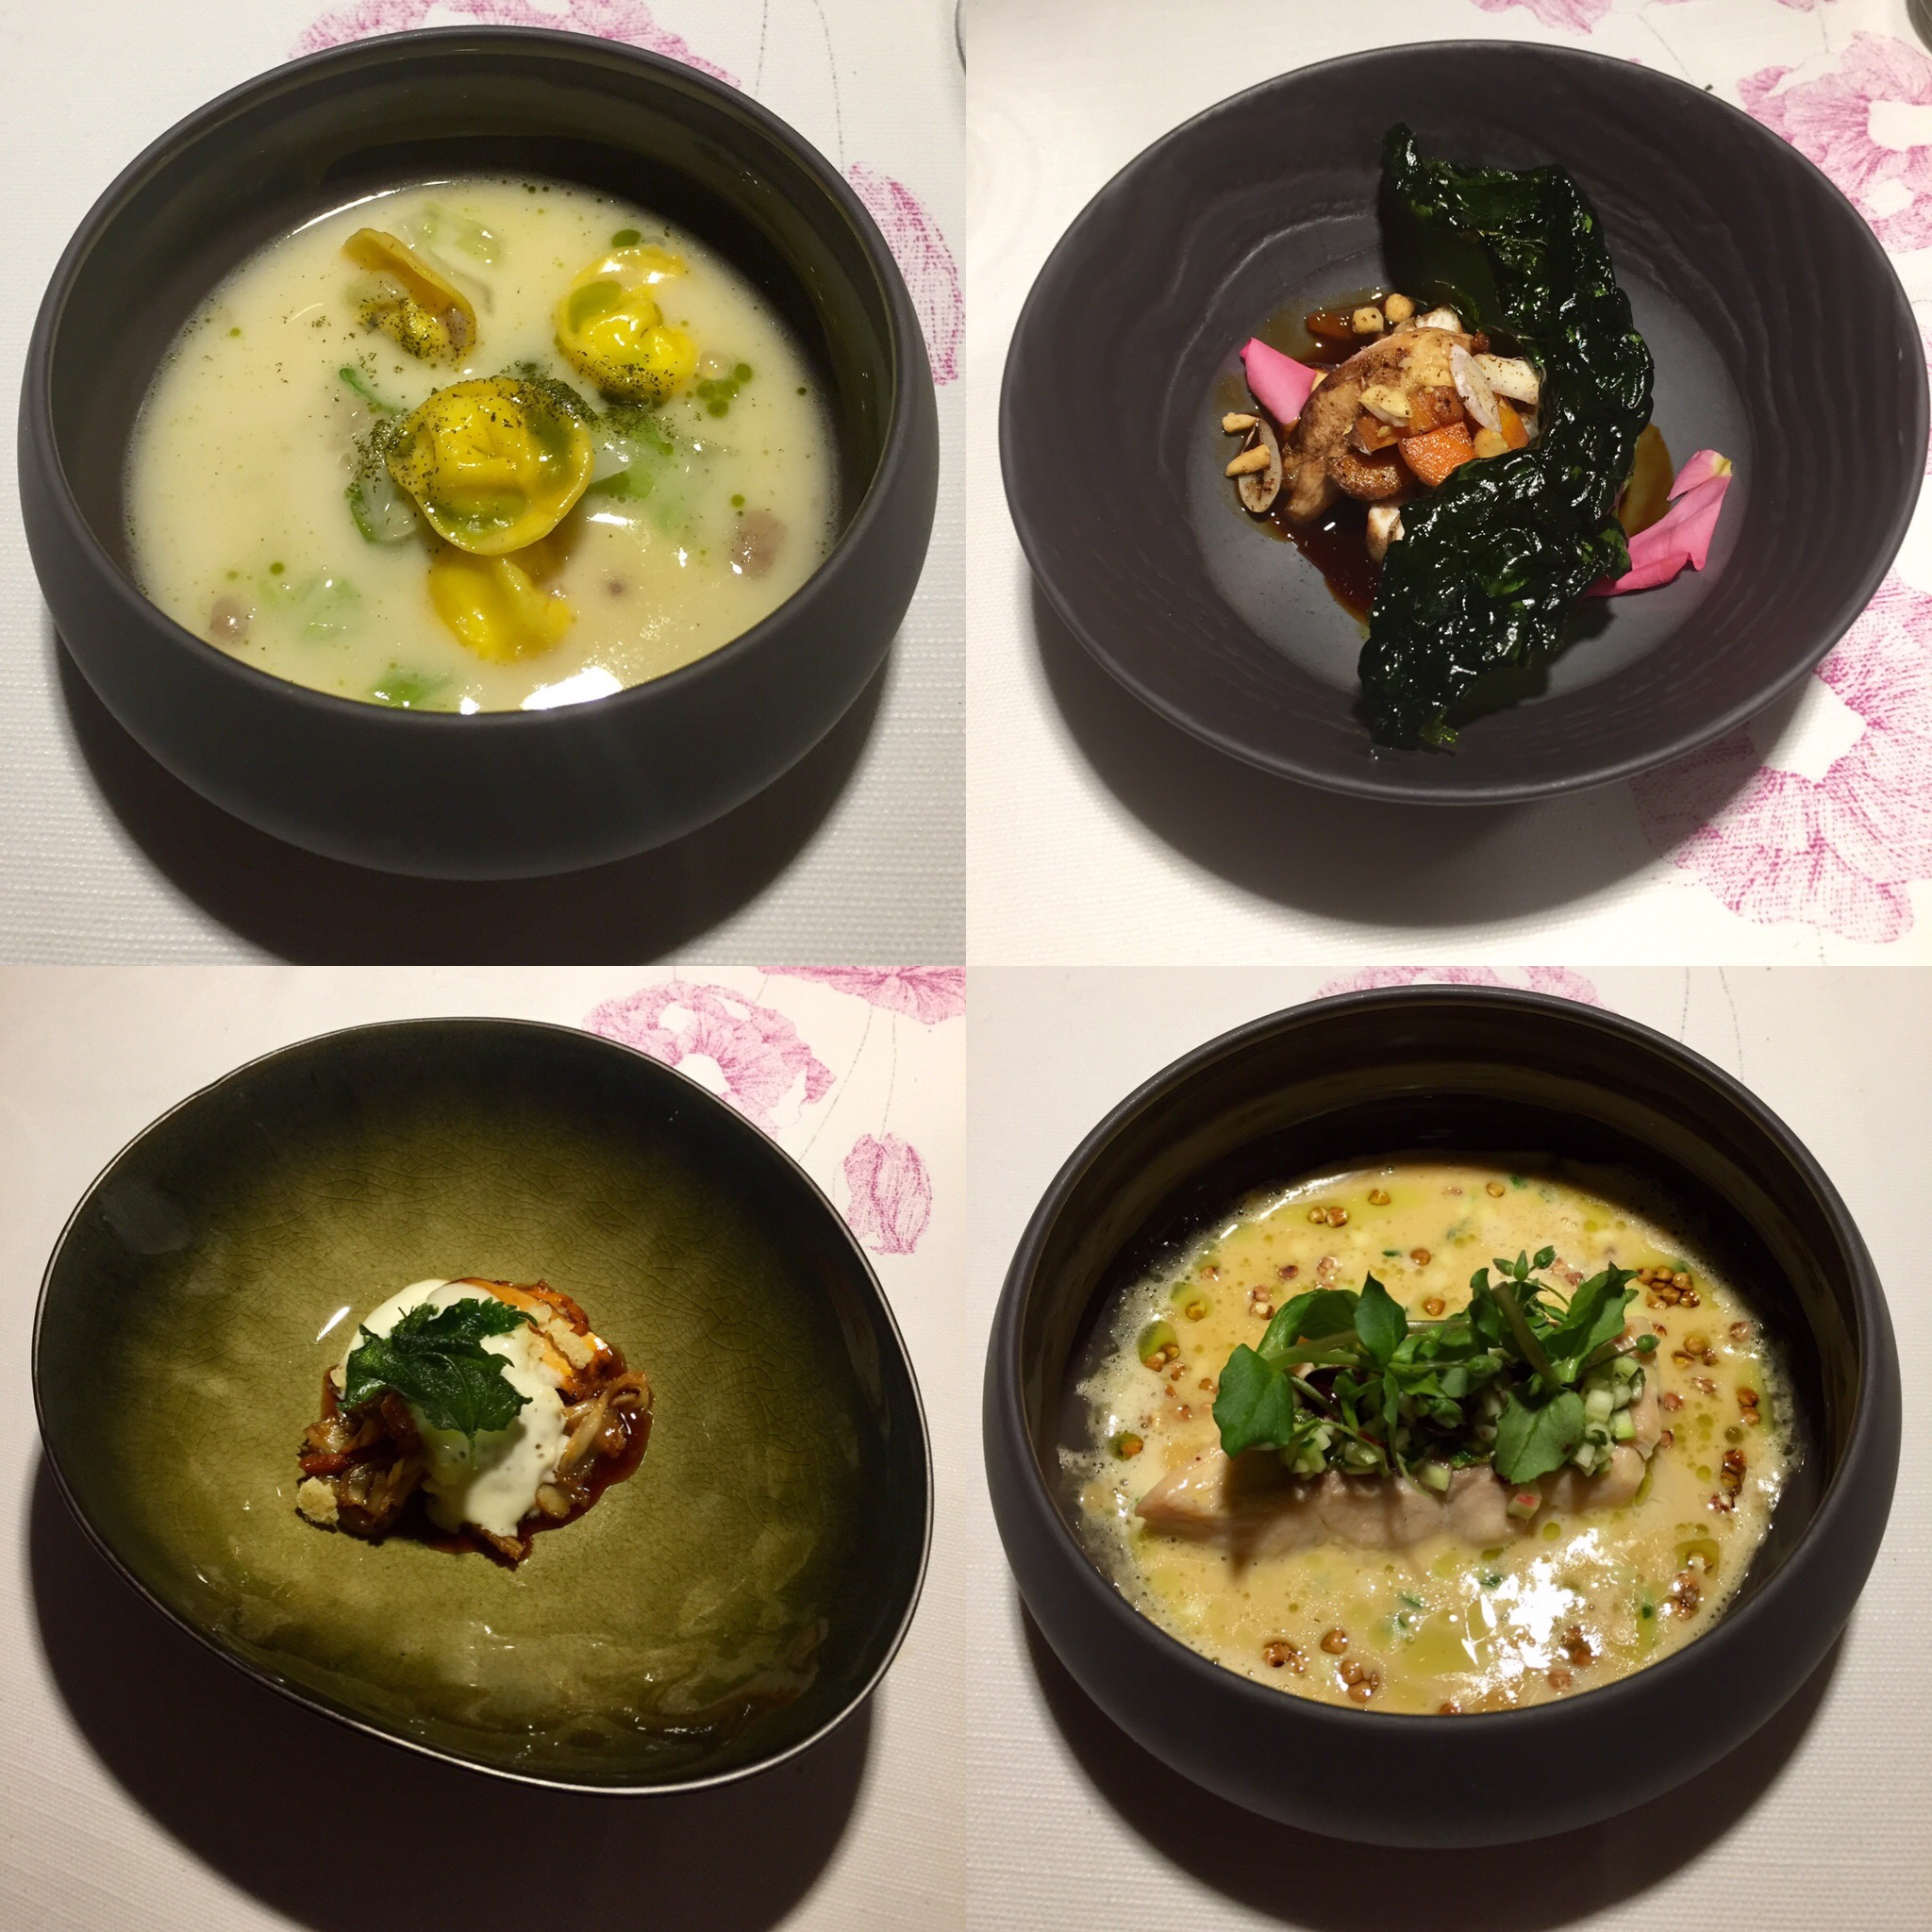 Just a few of the amazing dishes from Hiša Franko